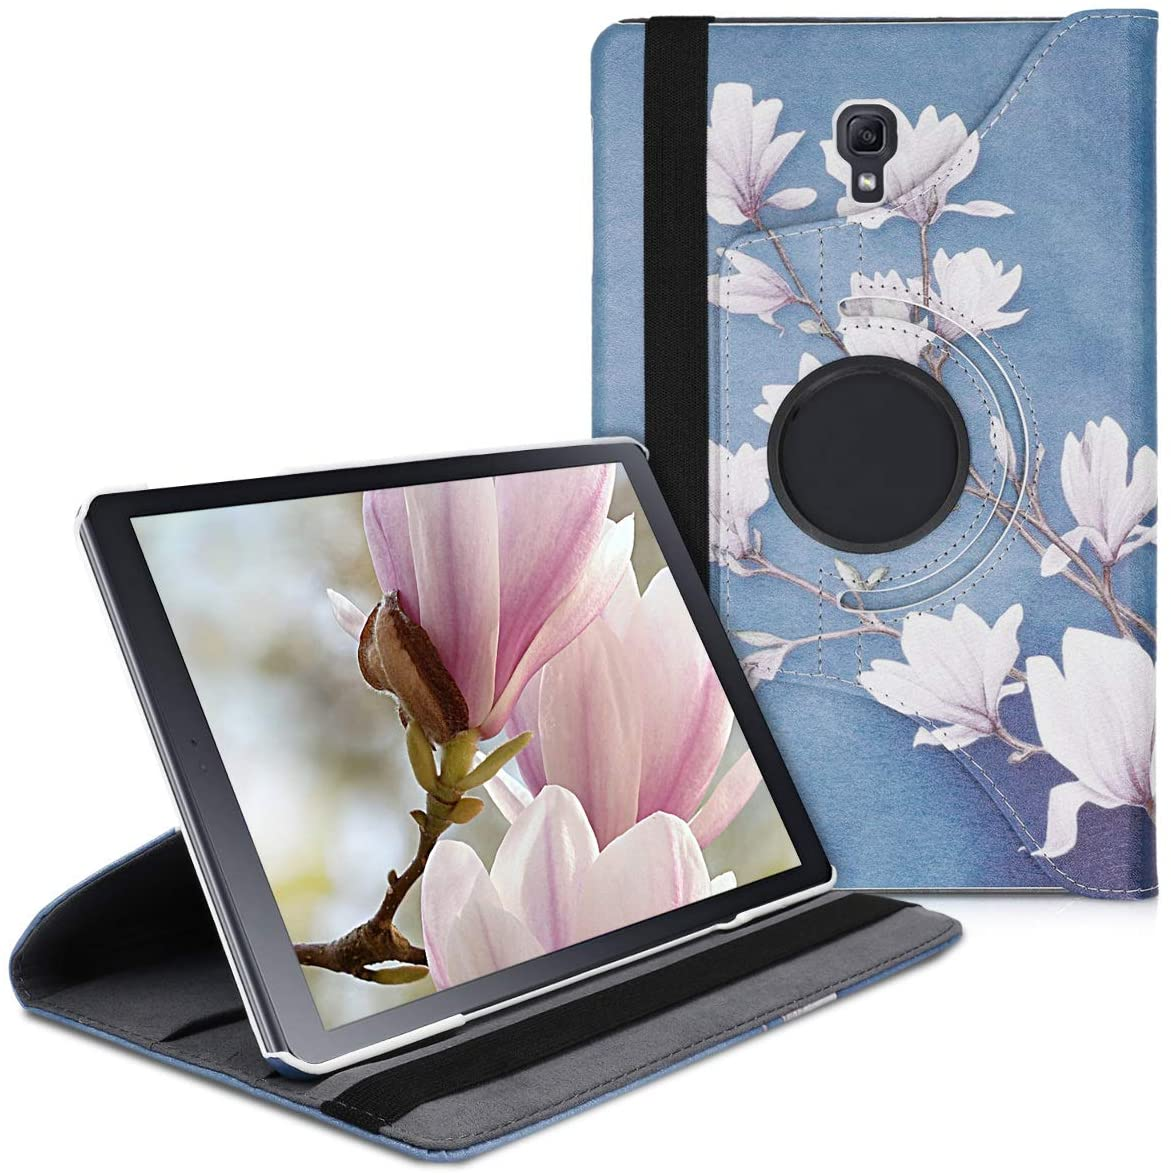 kwmobile 360° Case Compatible with Samsung Galaxy Tab A 10.5 - PU Leather Tablet Cover with Stand Function - Magnolias Taupe/White/Blue Grey